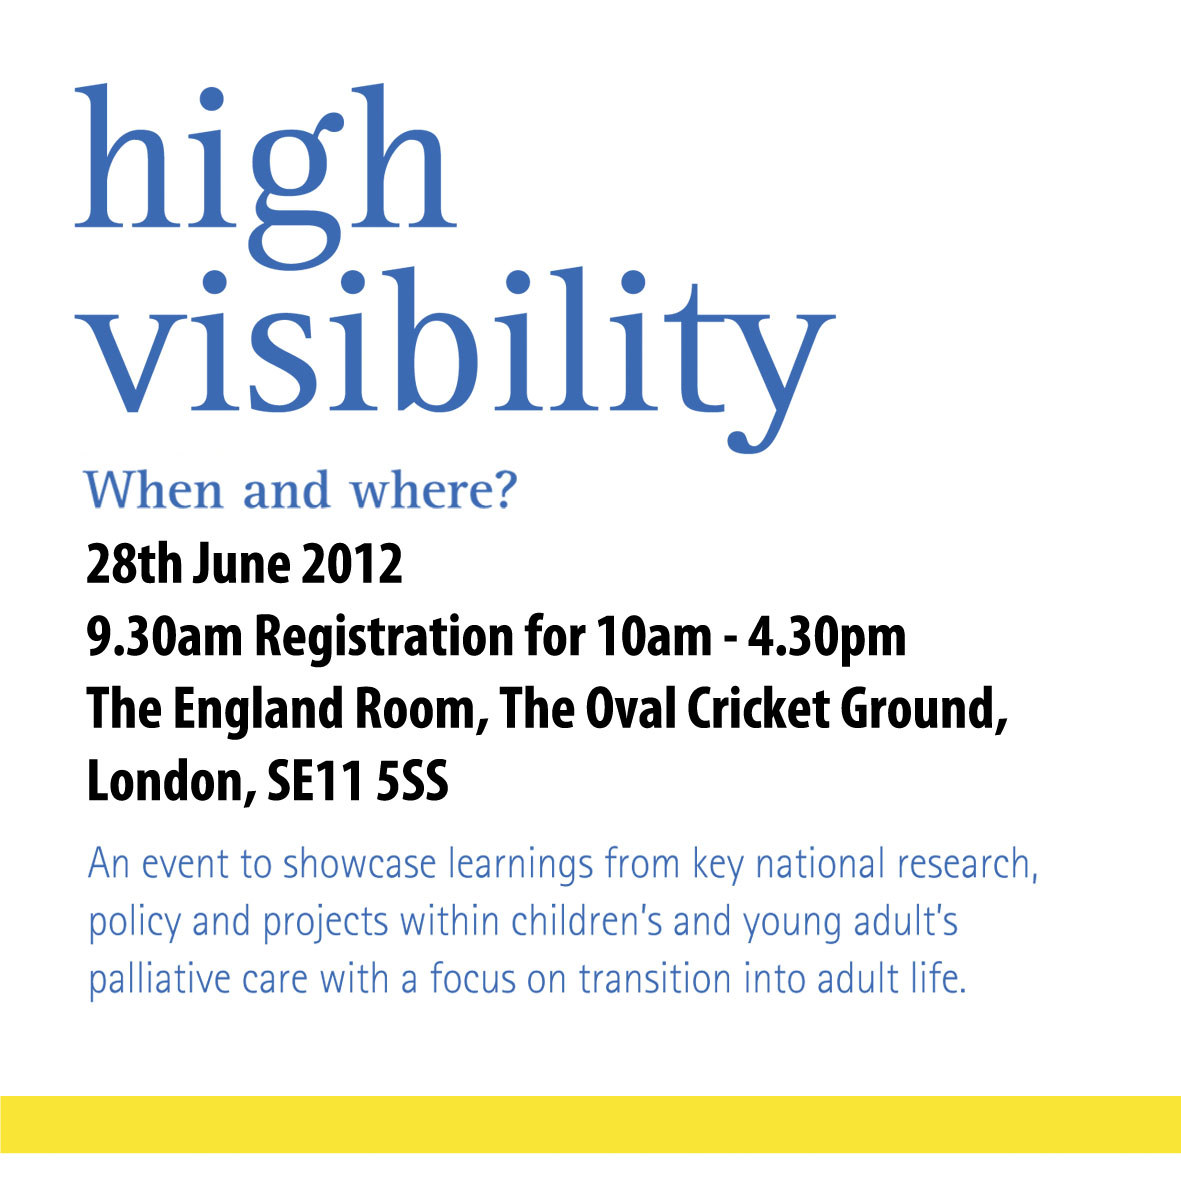 High Visibilty Event Details 28 June 2012